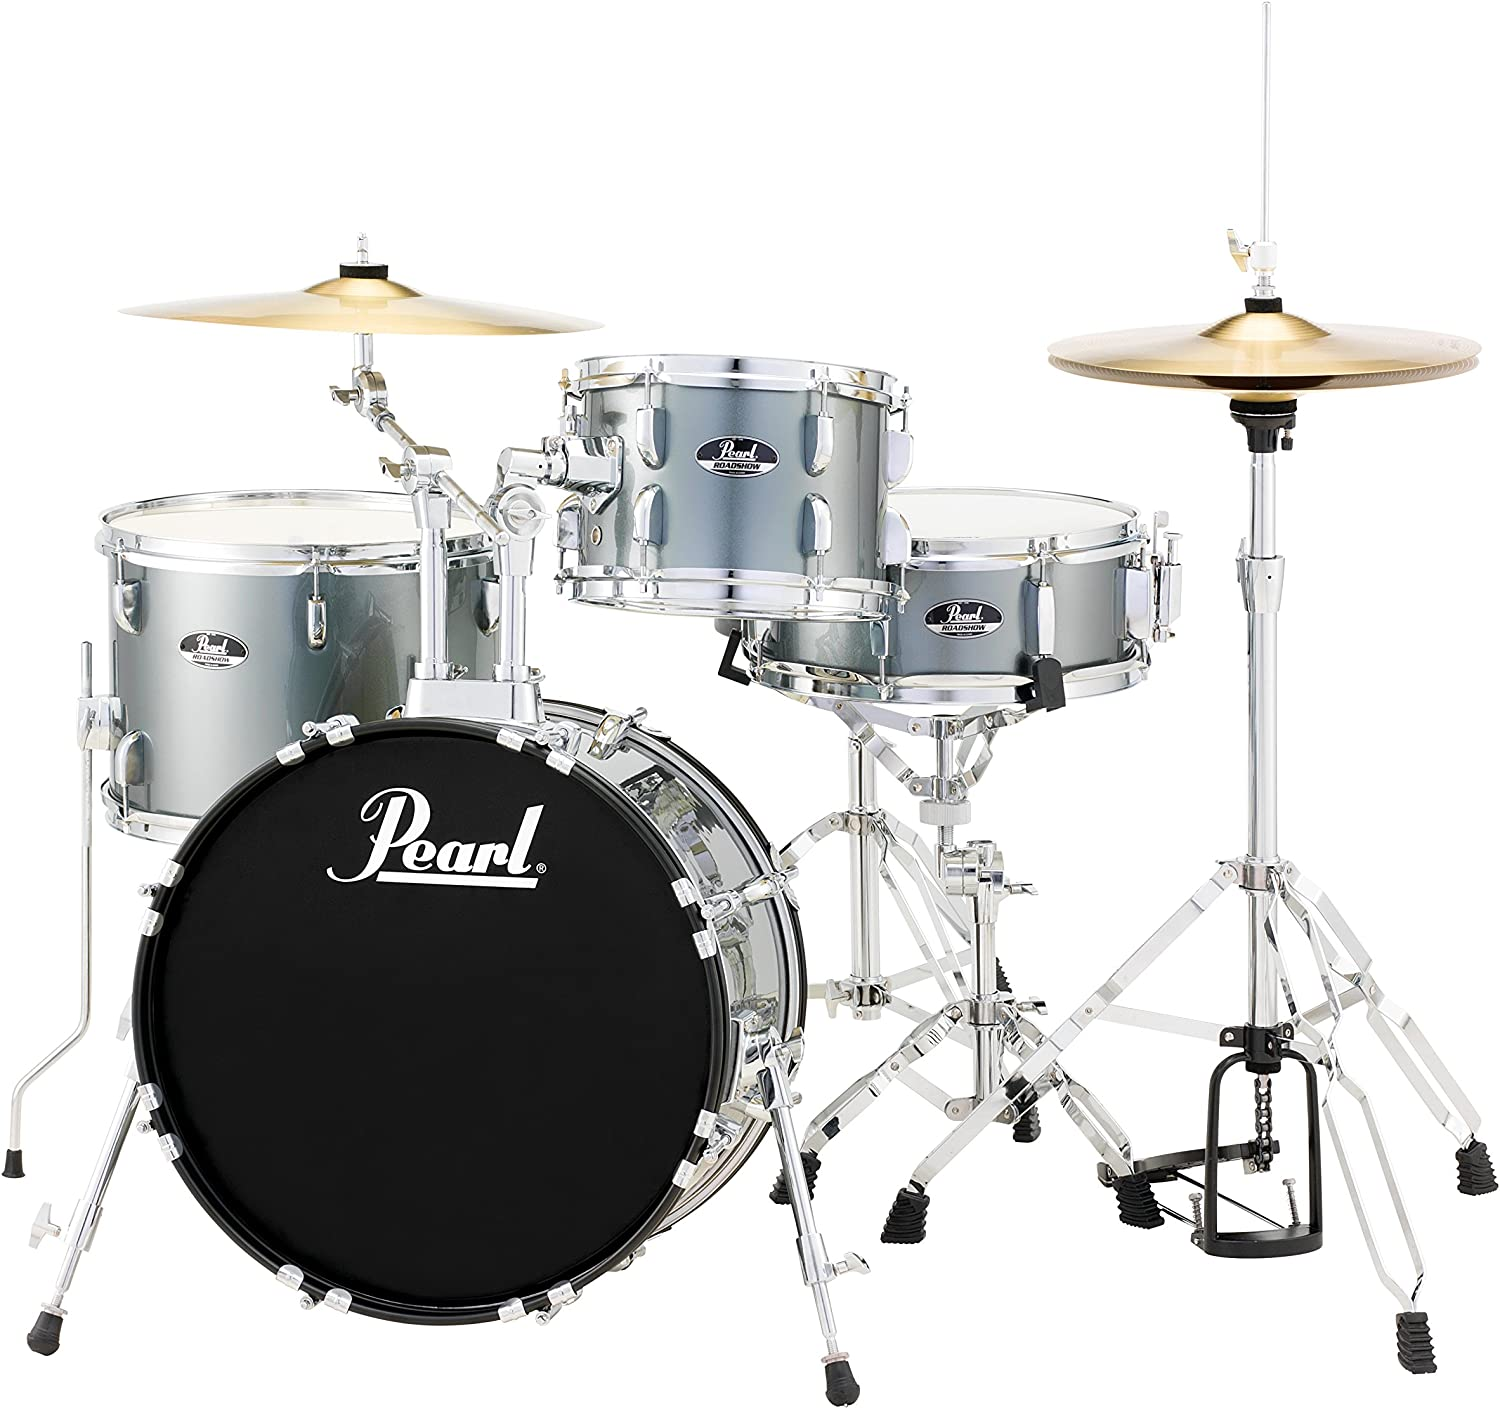 Amazon.com: Pearl RS584CC706 Roadshow 4-Piece Drum Set, Charcoal ...